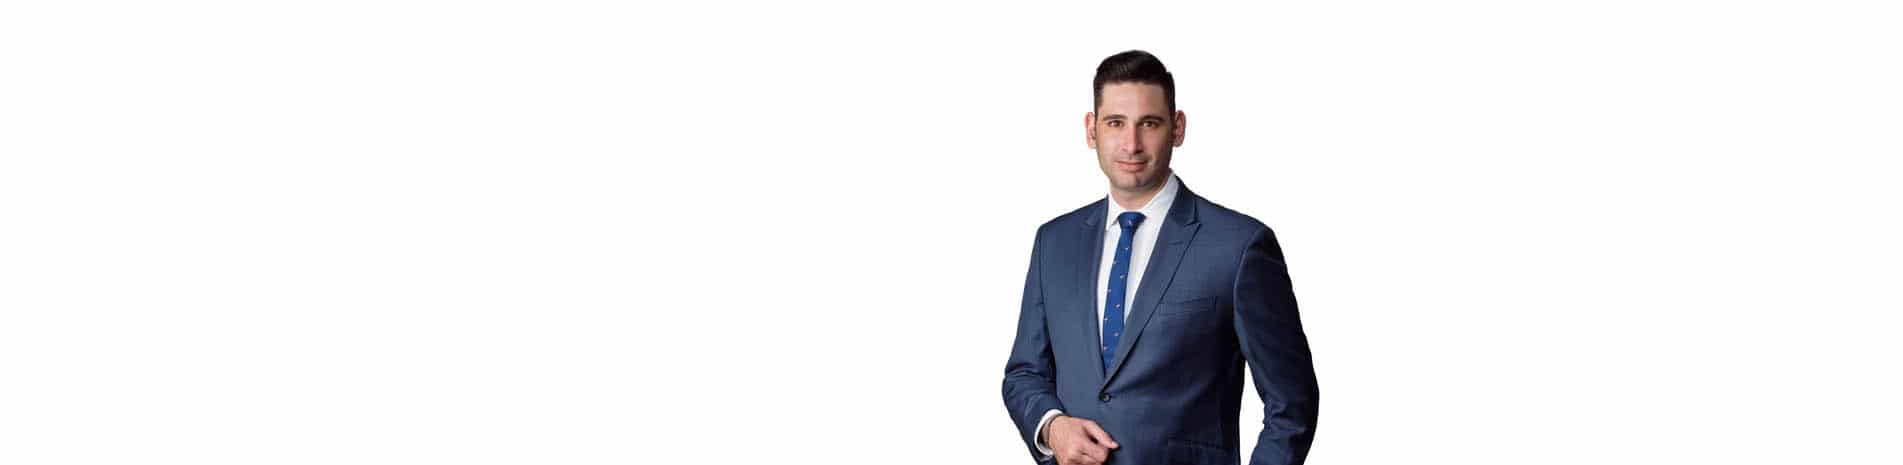 craig sher traffic lawyer Melbourne